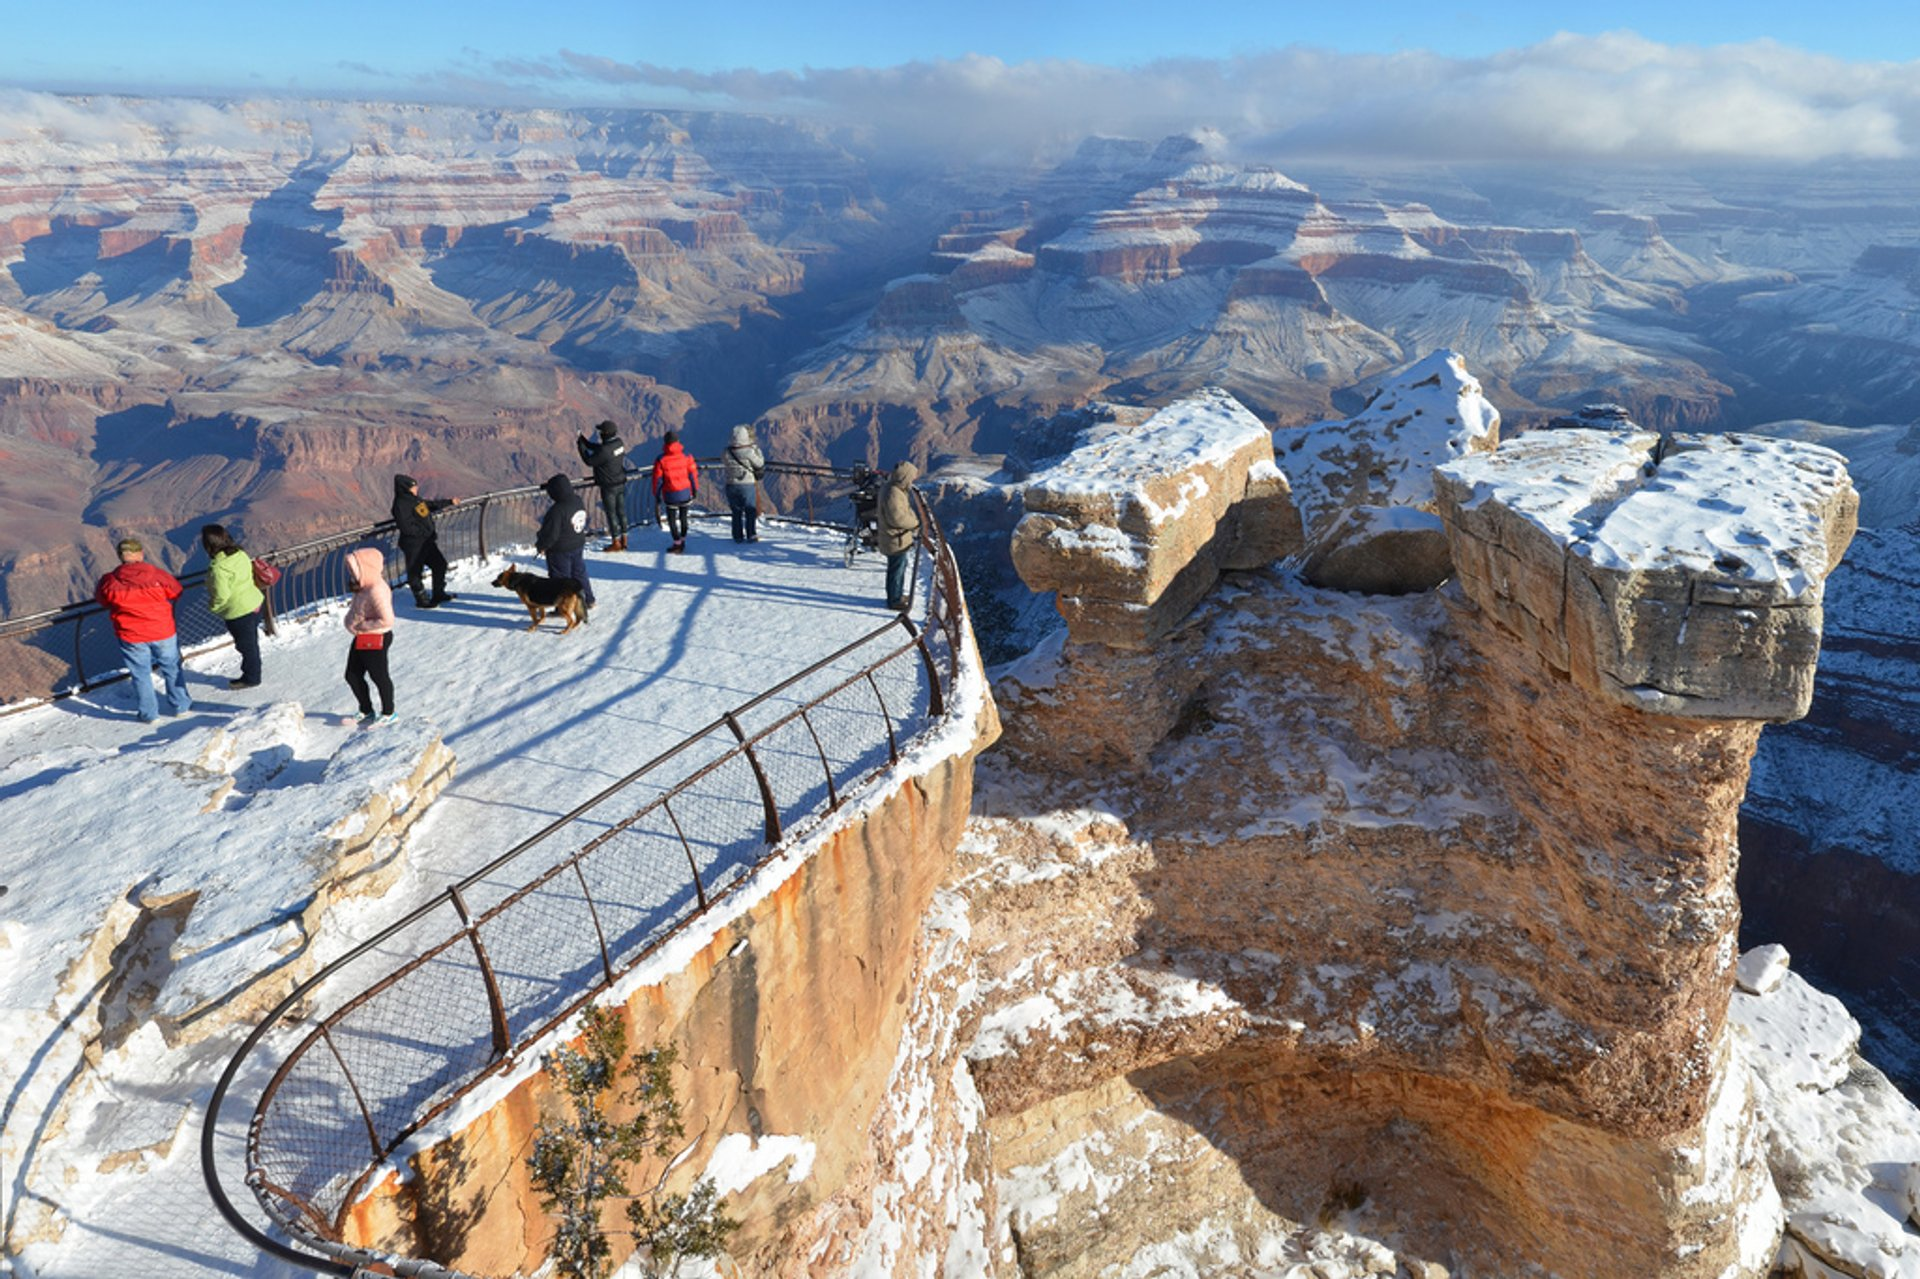 Snow-Powdered Landscape in Grand Canyon - Best Season